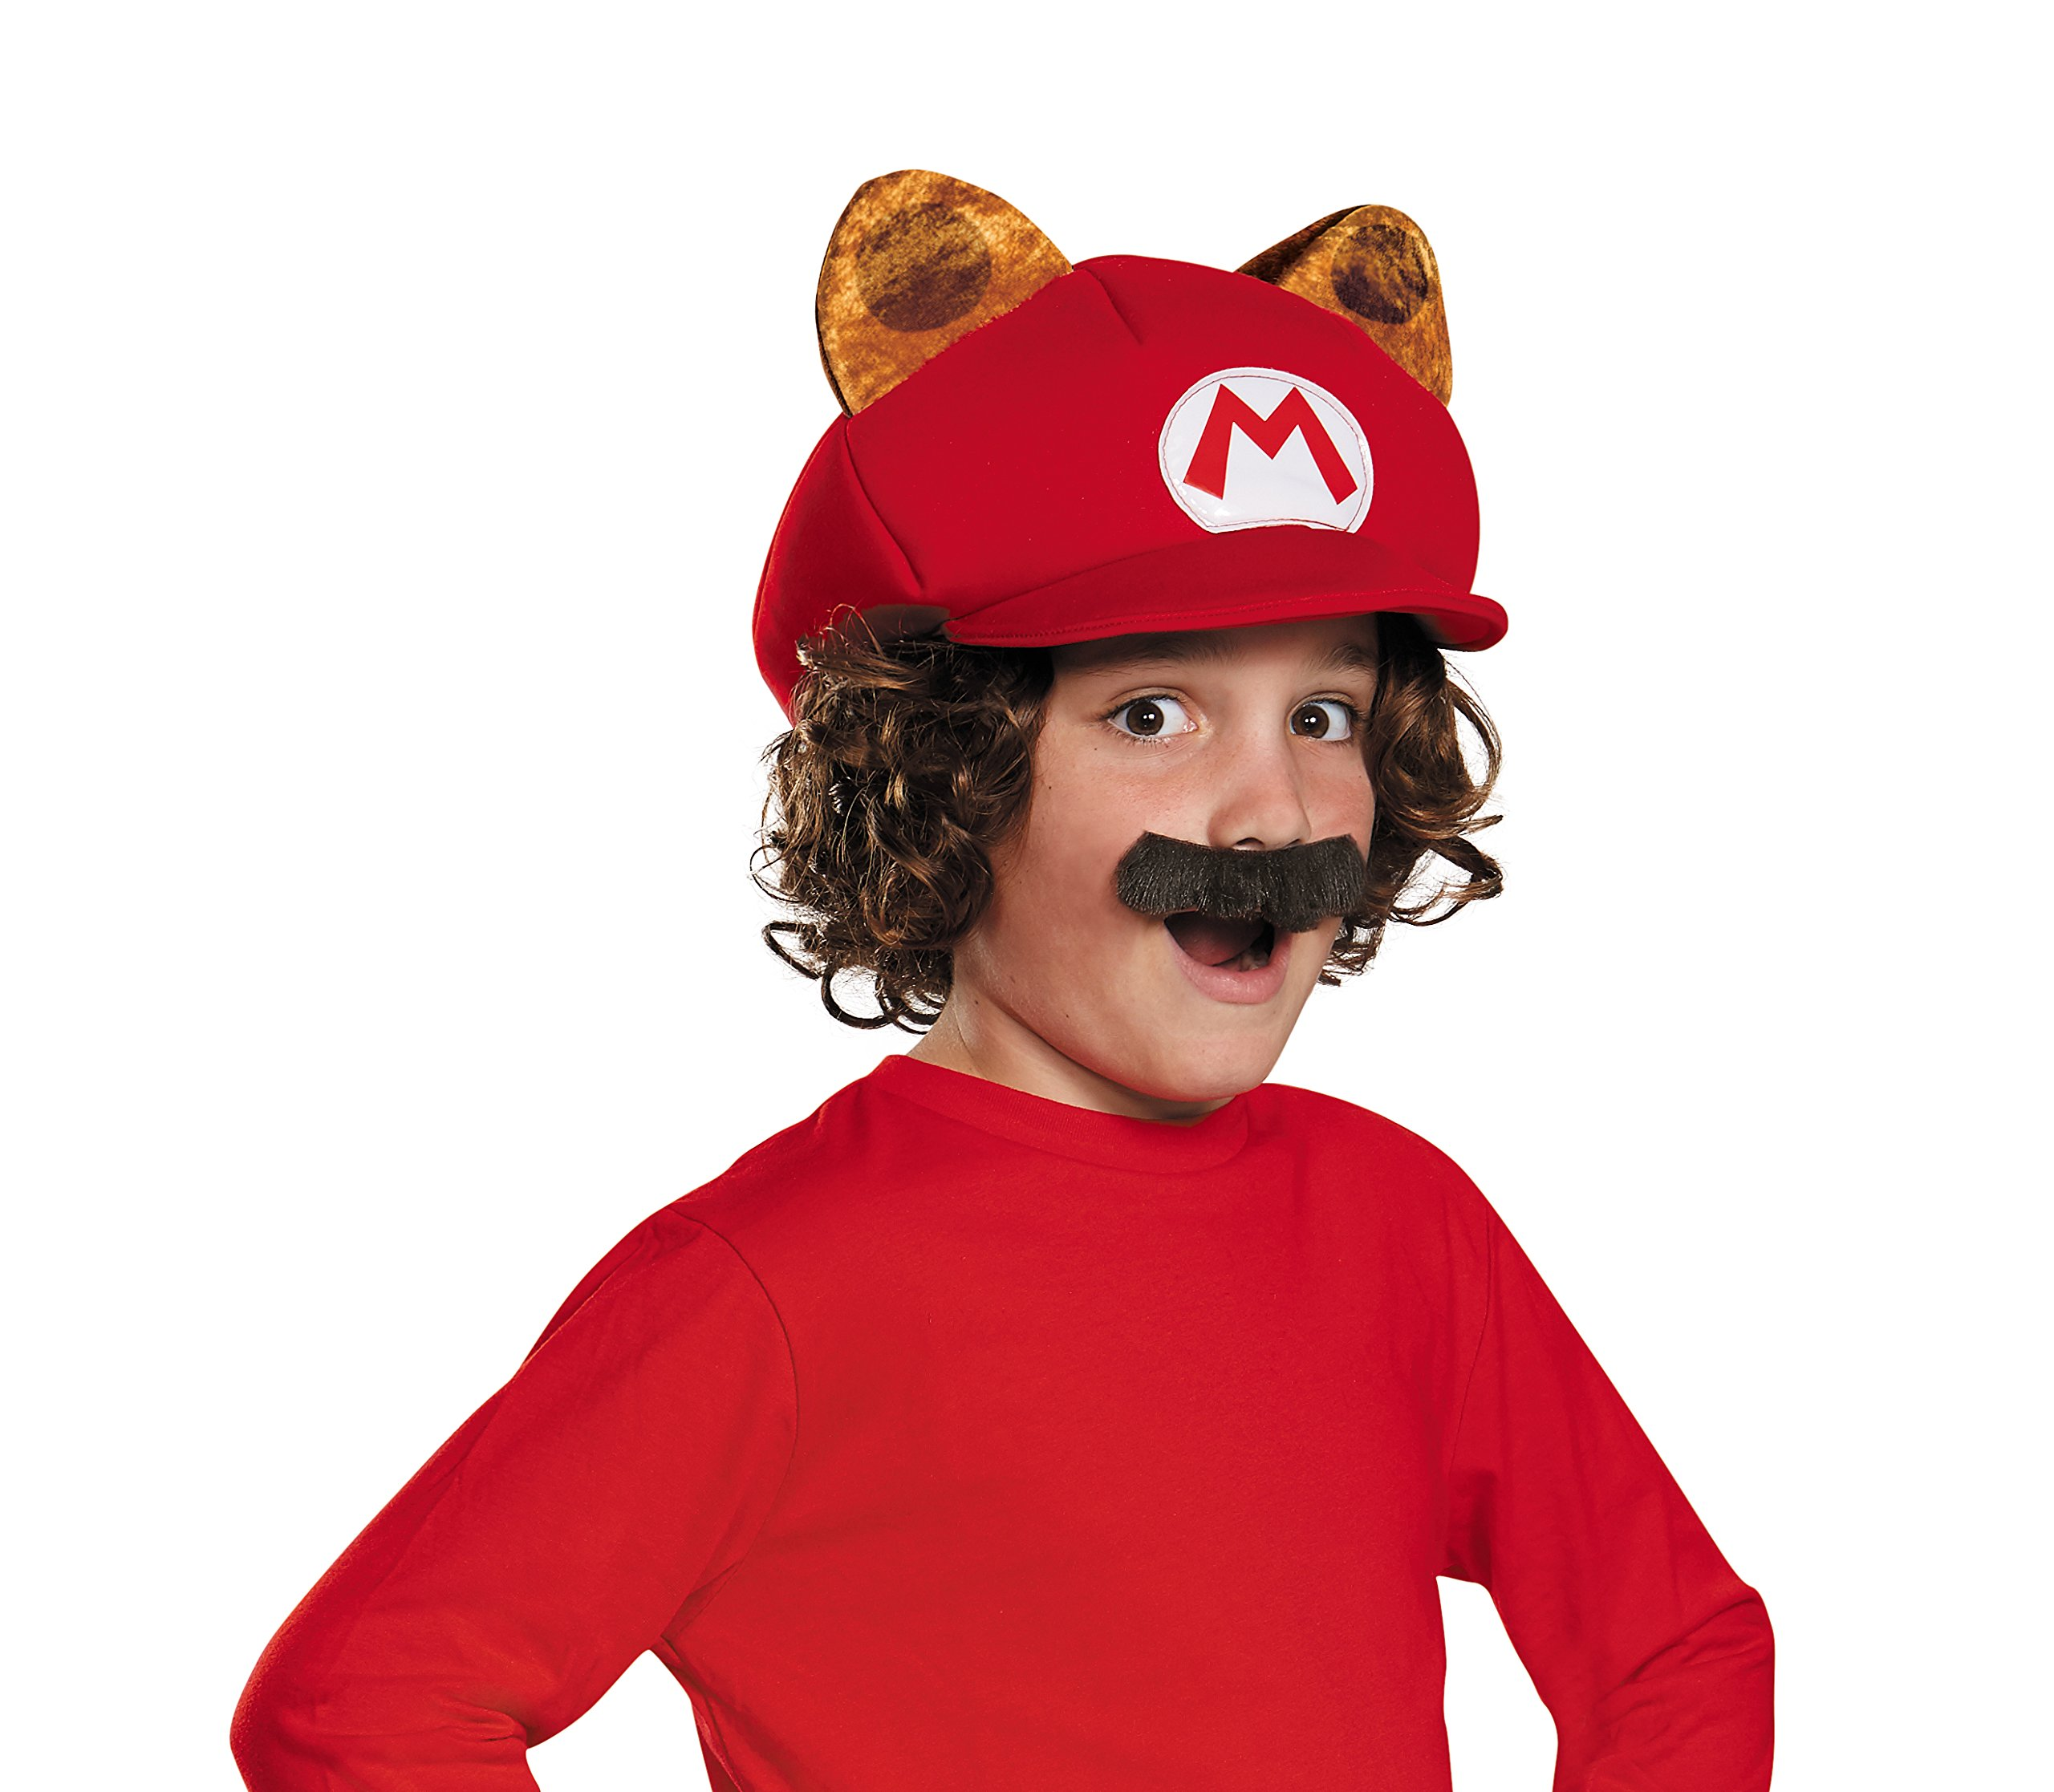 Racoon Super Mario Bros. Nintendo Child Hat & Mustache, One Size Child by Disguise